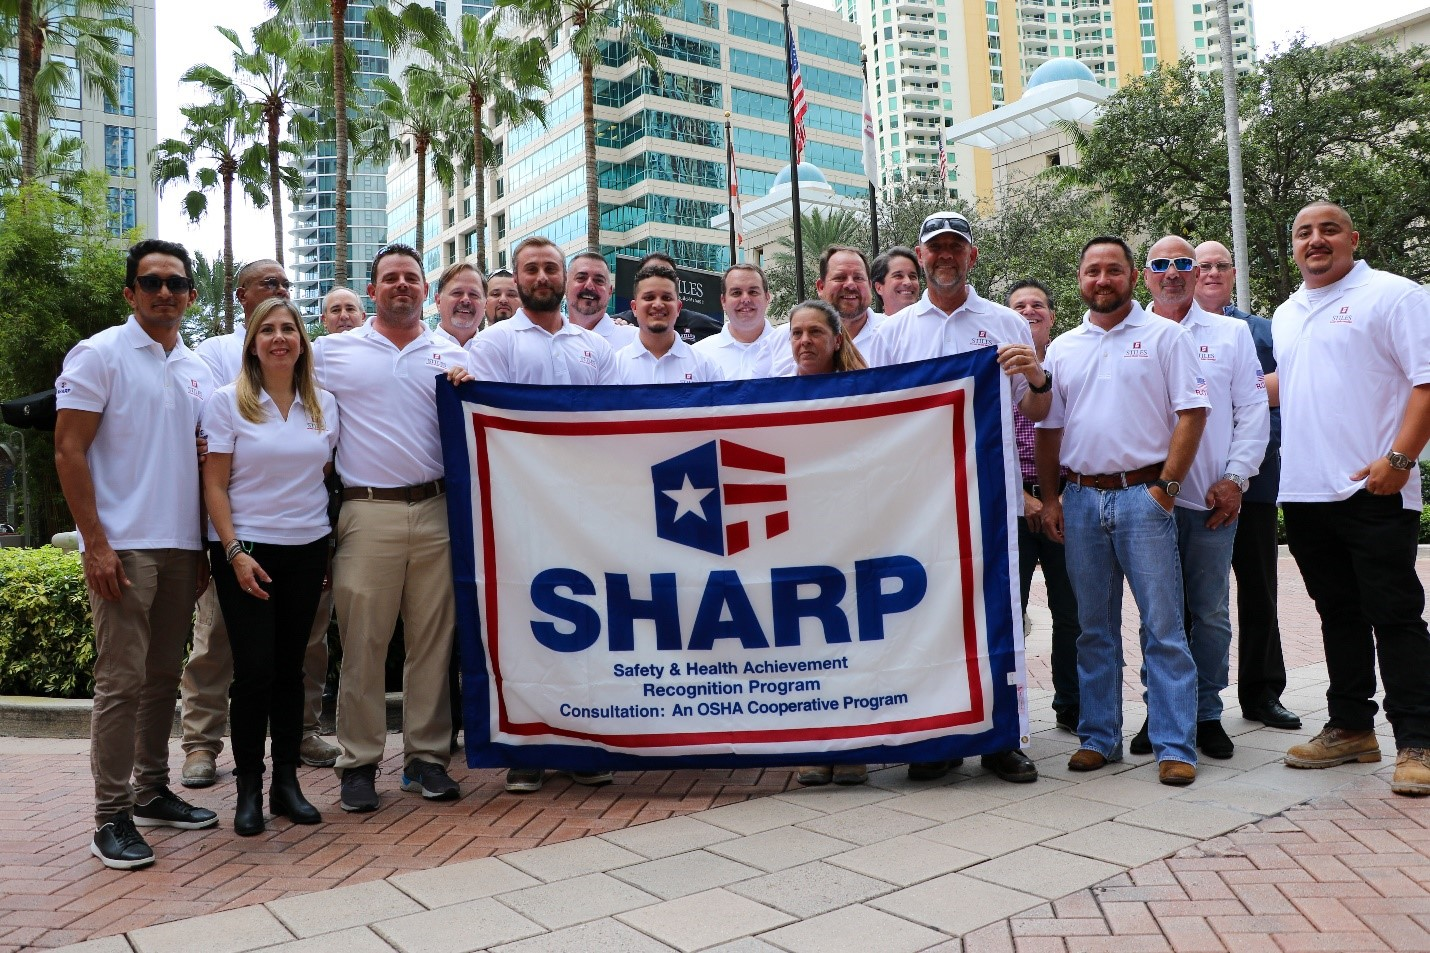 Stiles Construction Team on the R.O.L.O. project with SHARP Flag